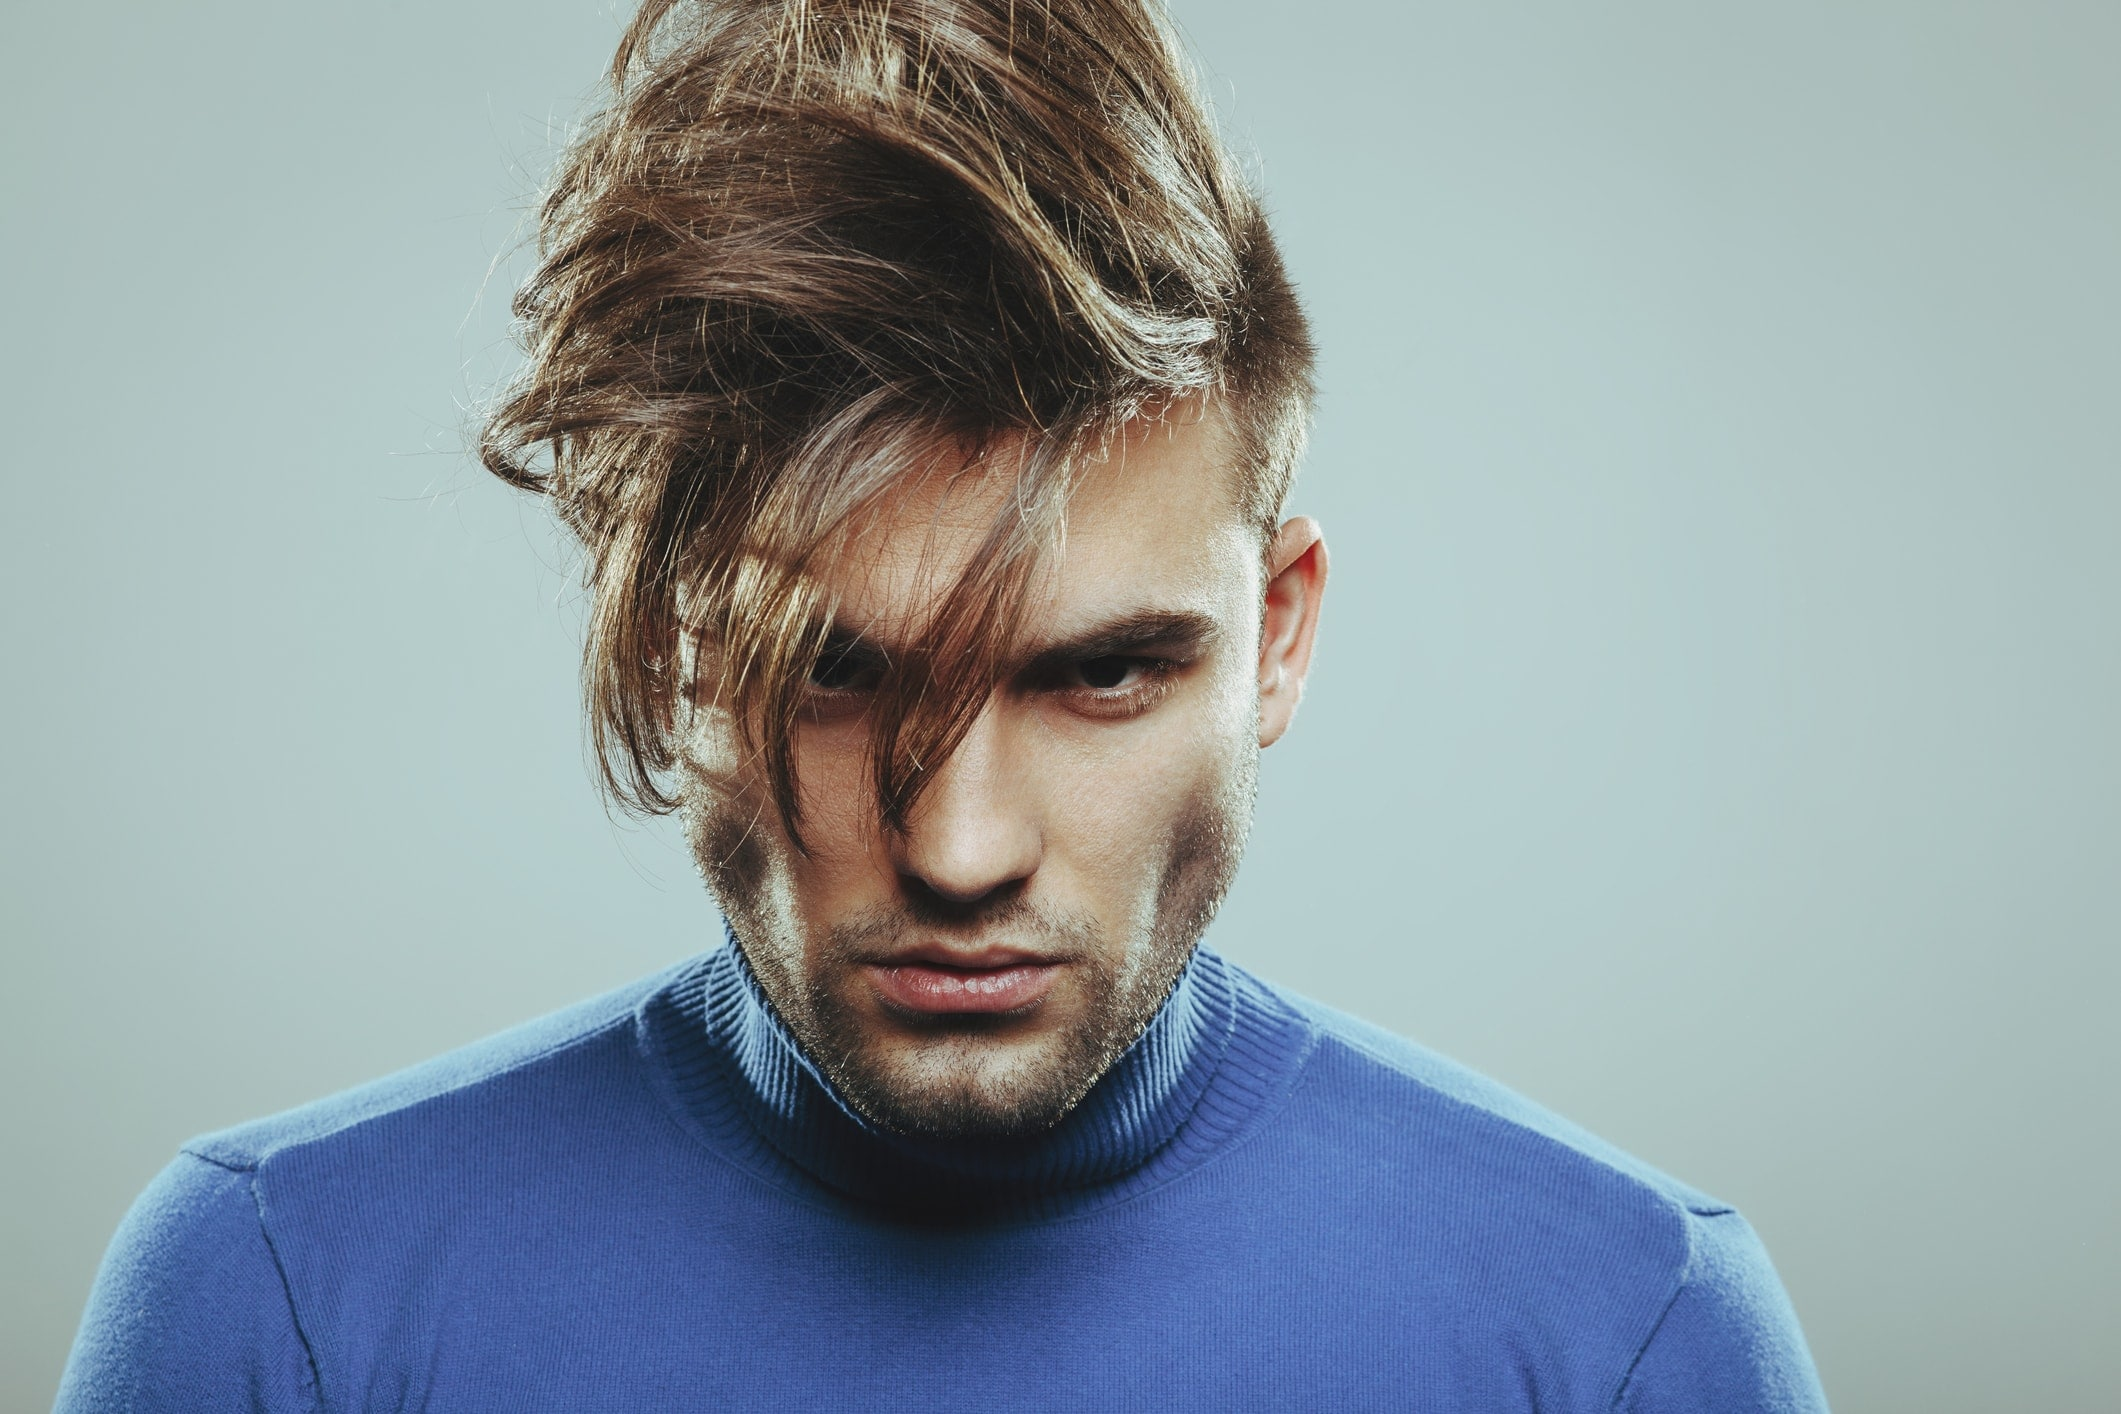 Man with undercut and long fringe